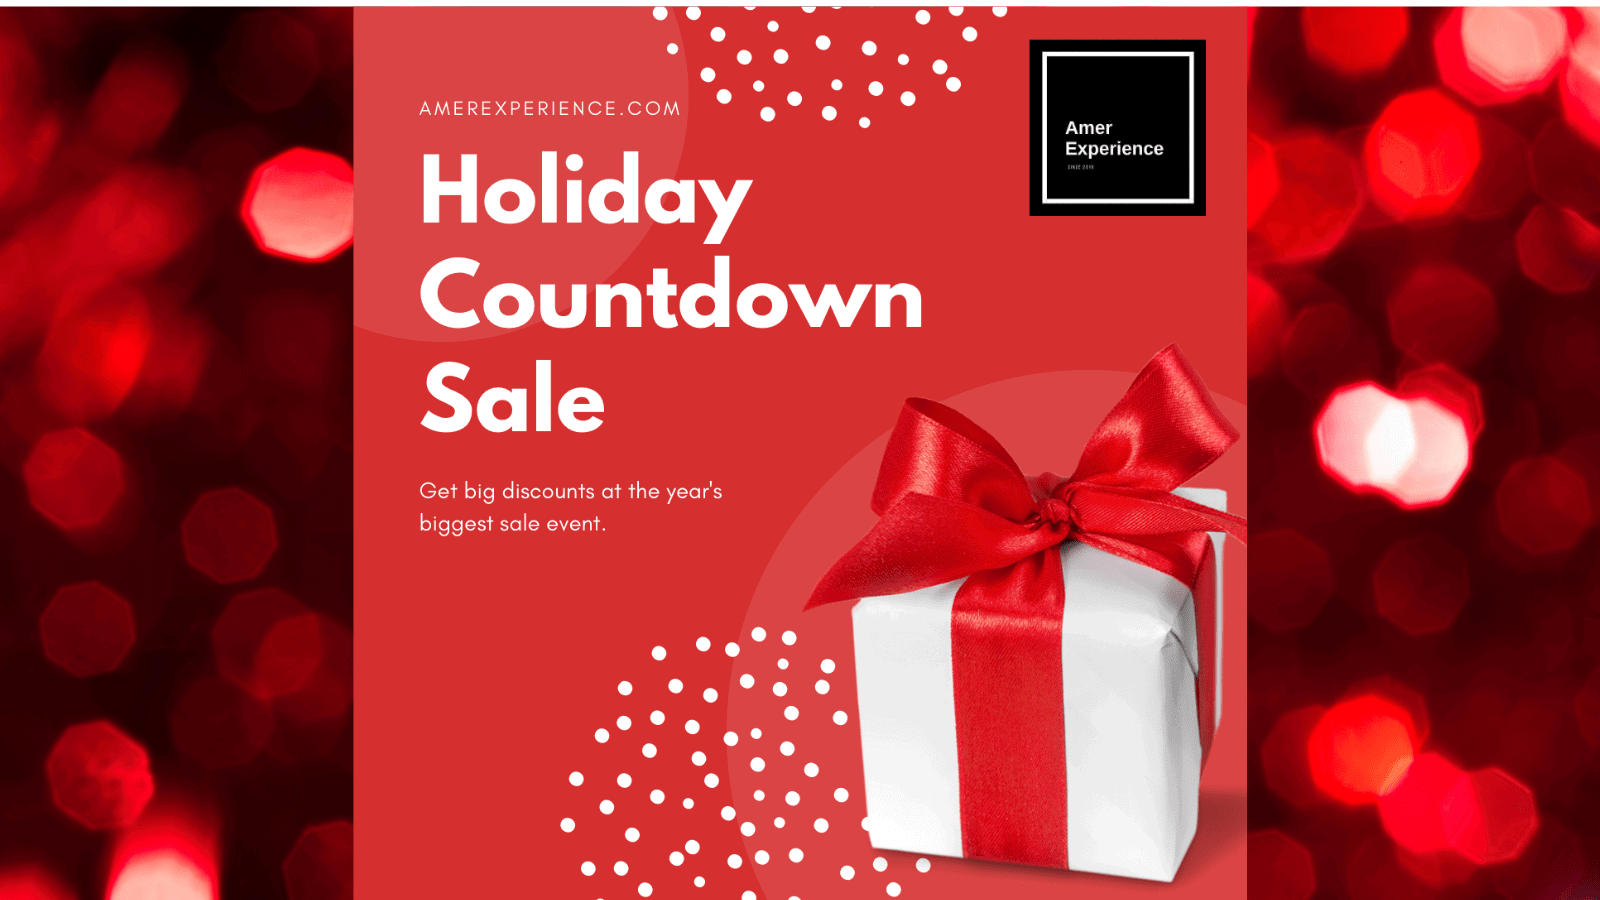 Big Holiday Deals Online - Special Deals - React Fast! While supplies last!